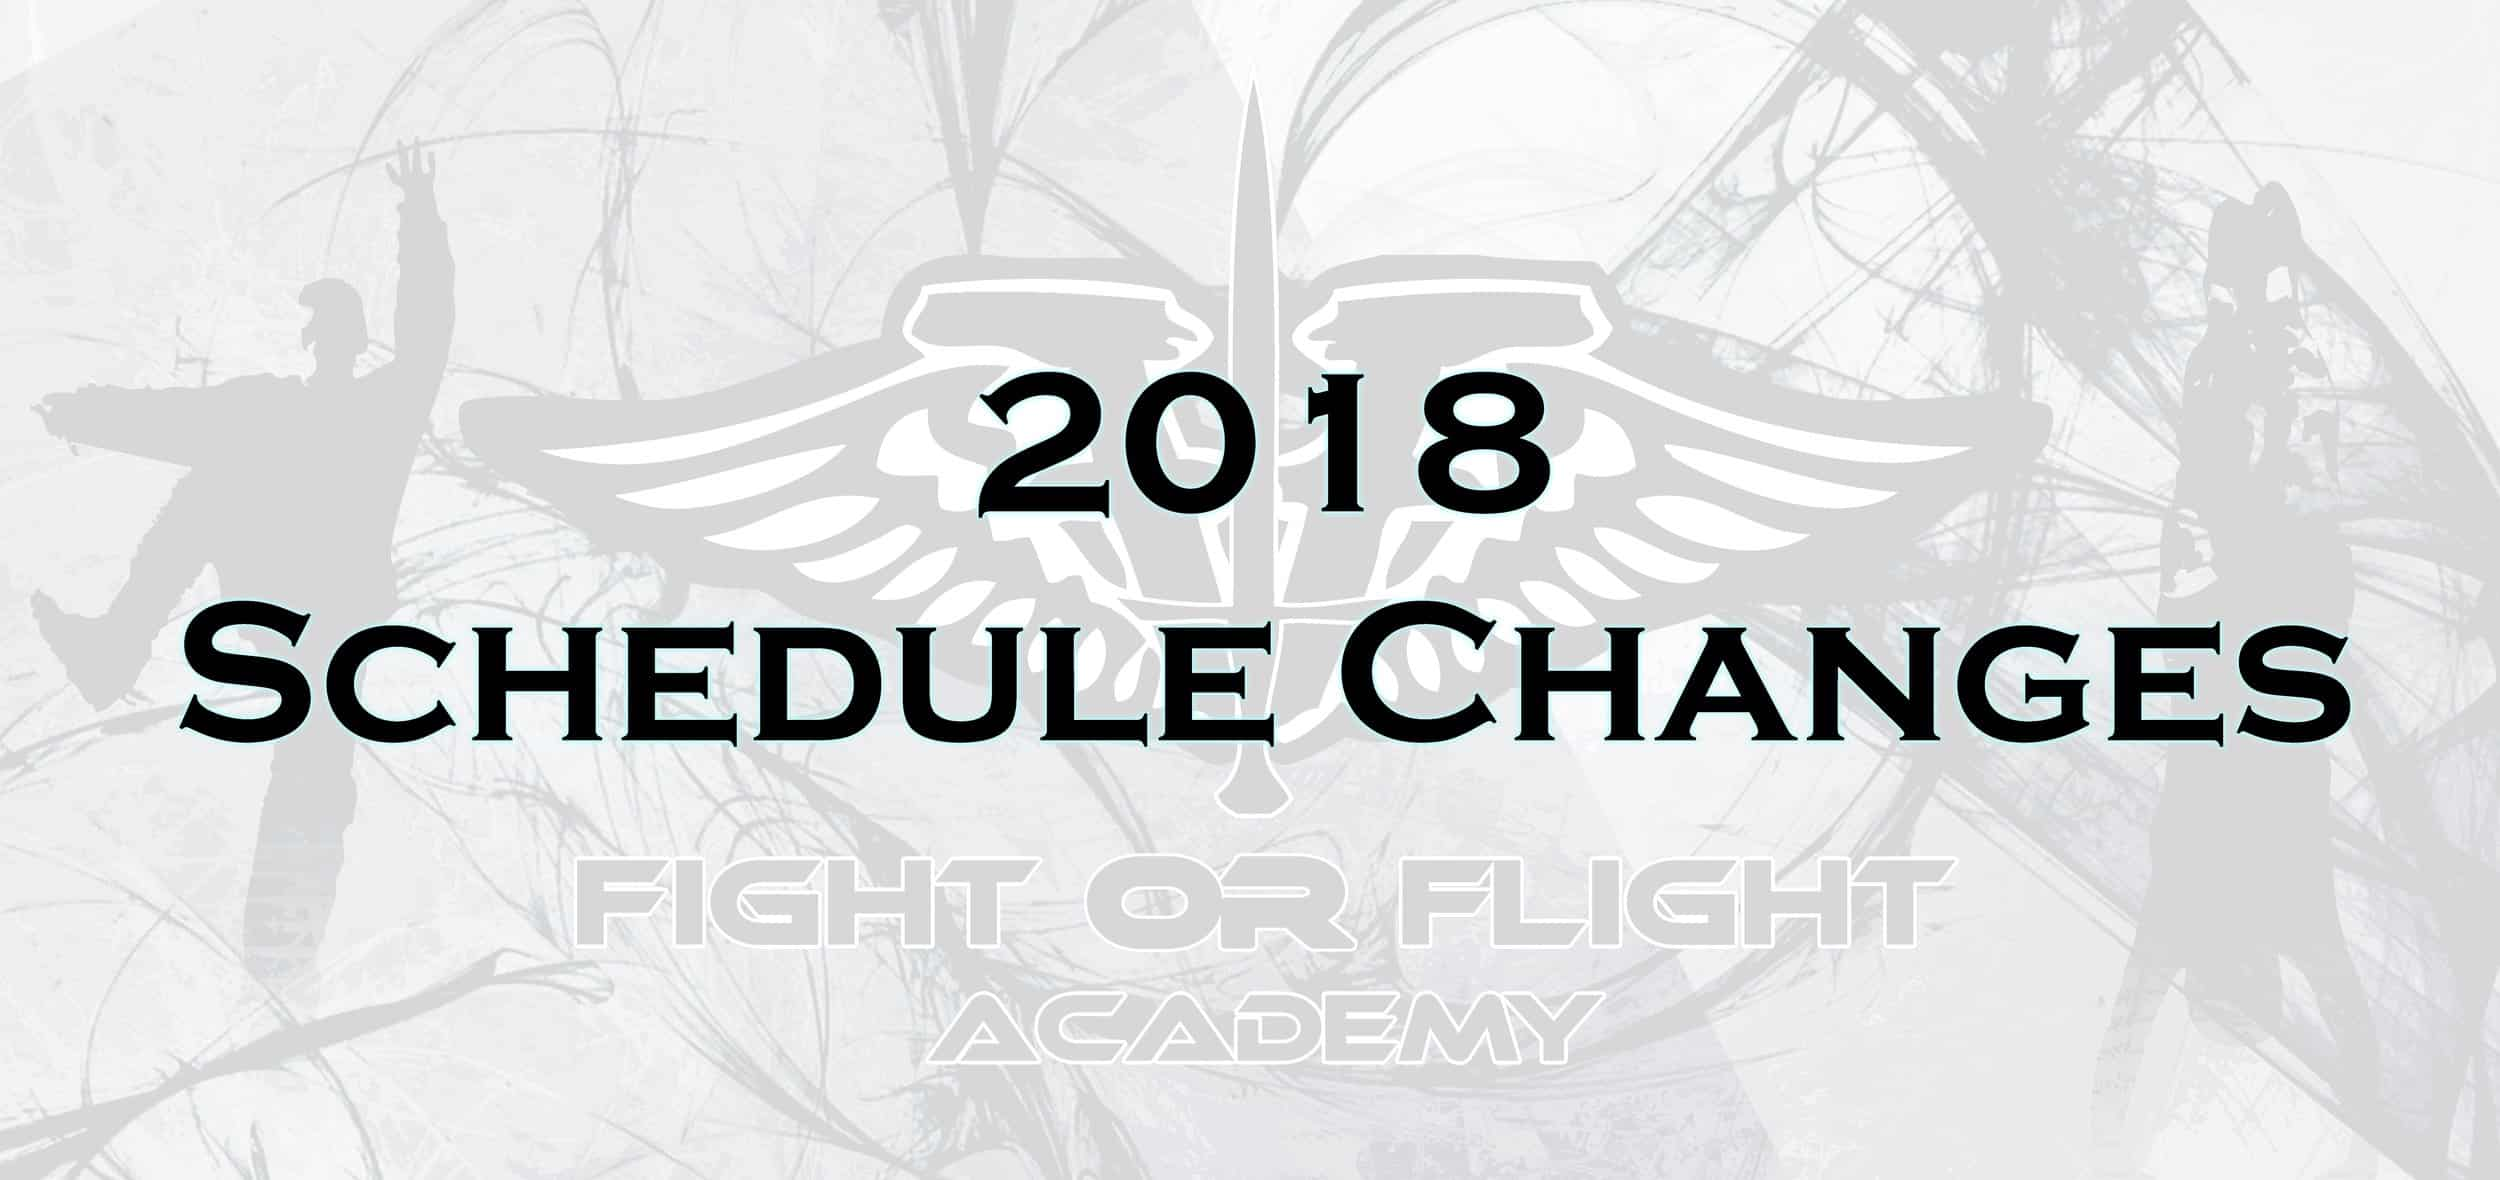 Huge Schedule Changes Coming in February